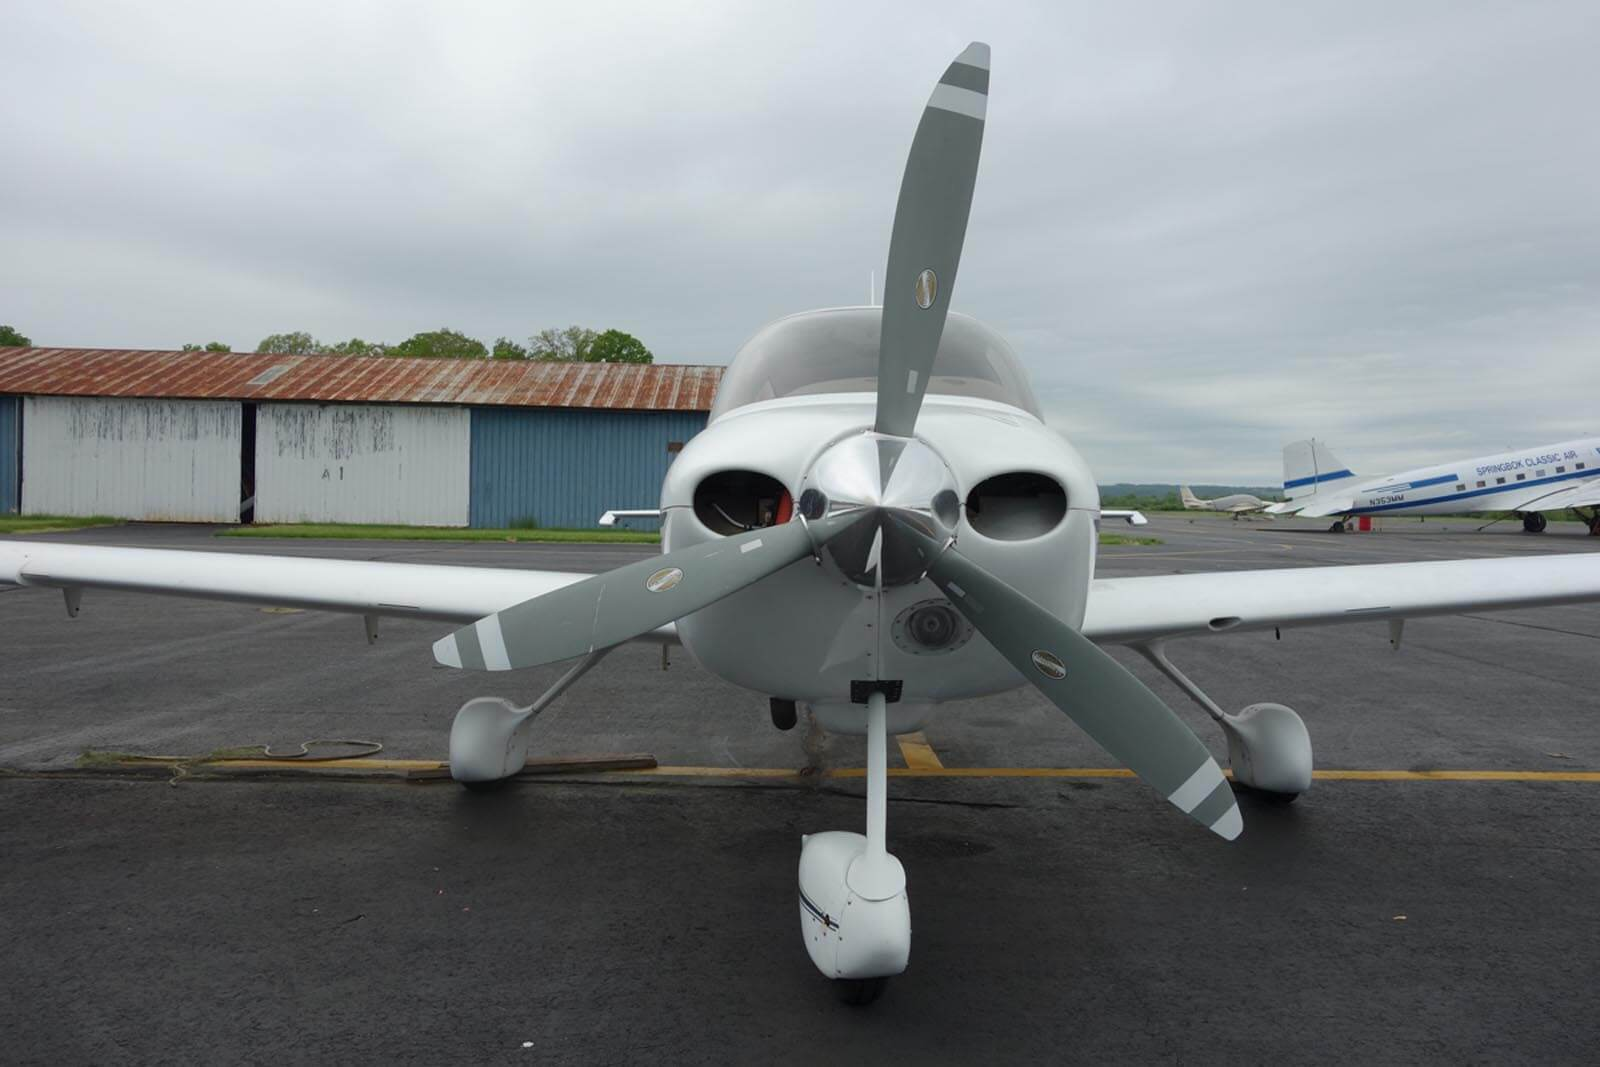 2002 Cirrus SR22 ~ FOR SALE at Princeton Airport ~ Contact Ken Nierenberg at 609-731-4628 for details